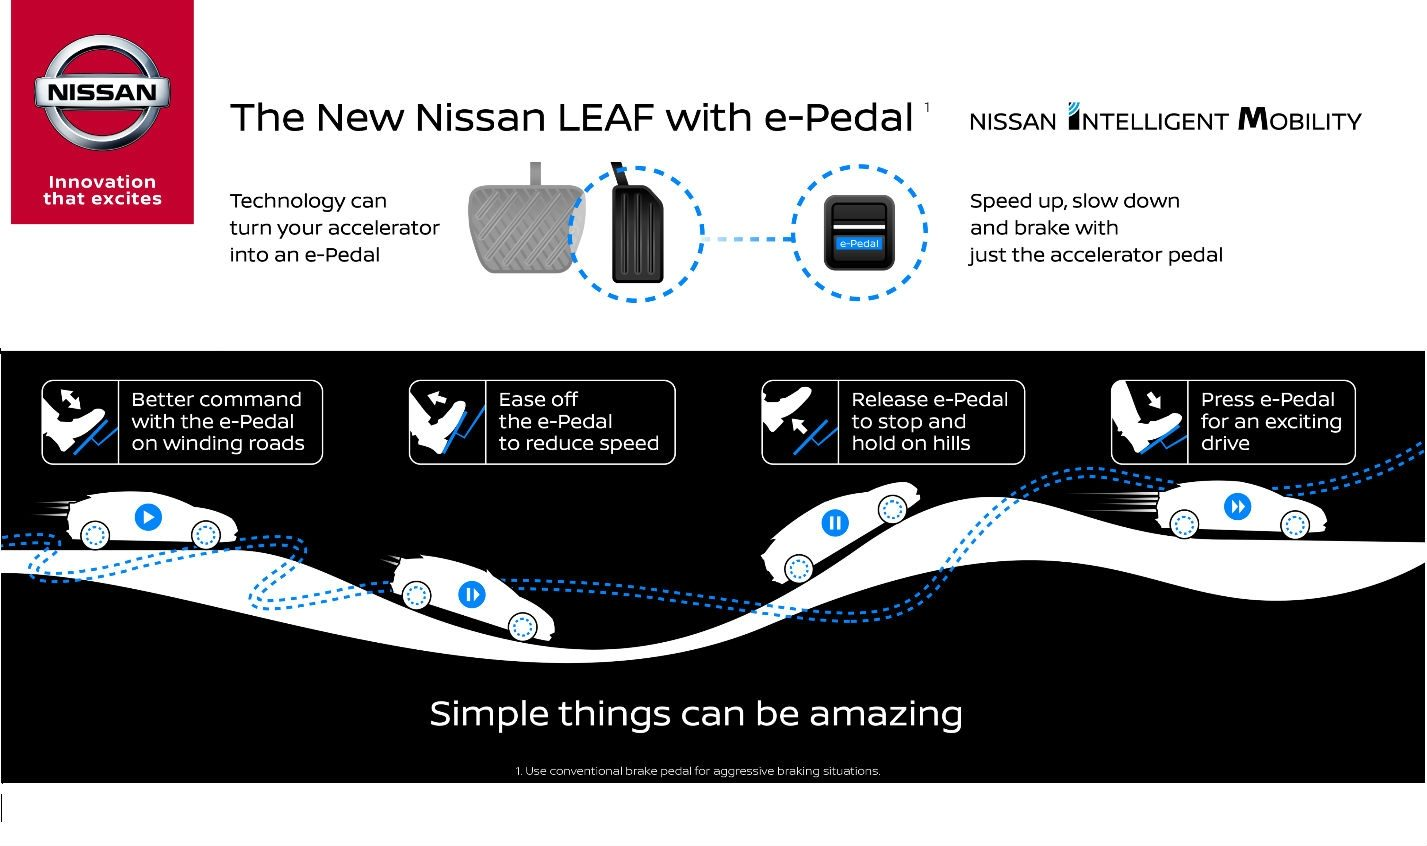 Nissan LEAF will come with e-Pedal&#x3b; the world's first one-pedal operation that allows drivers to bring the car to a complete stop even on hills, stay in position, and resume driving instantly.